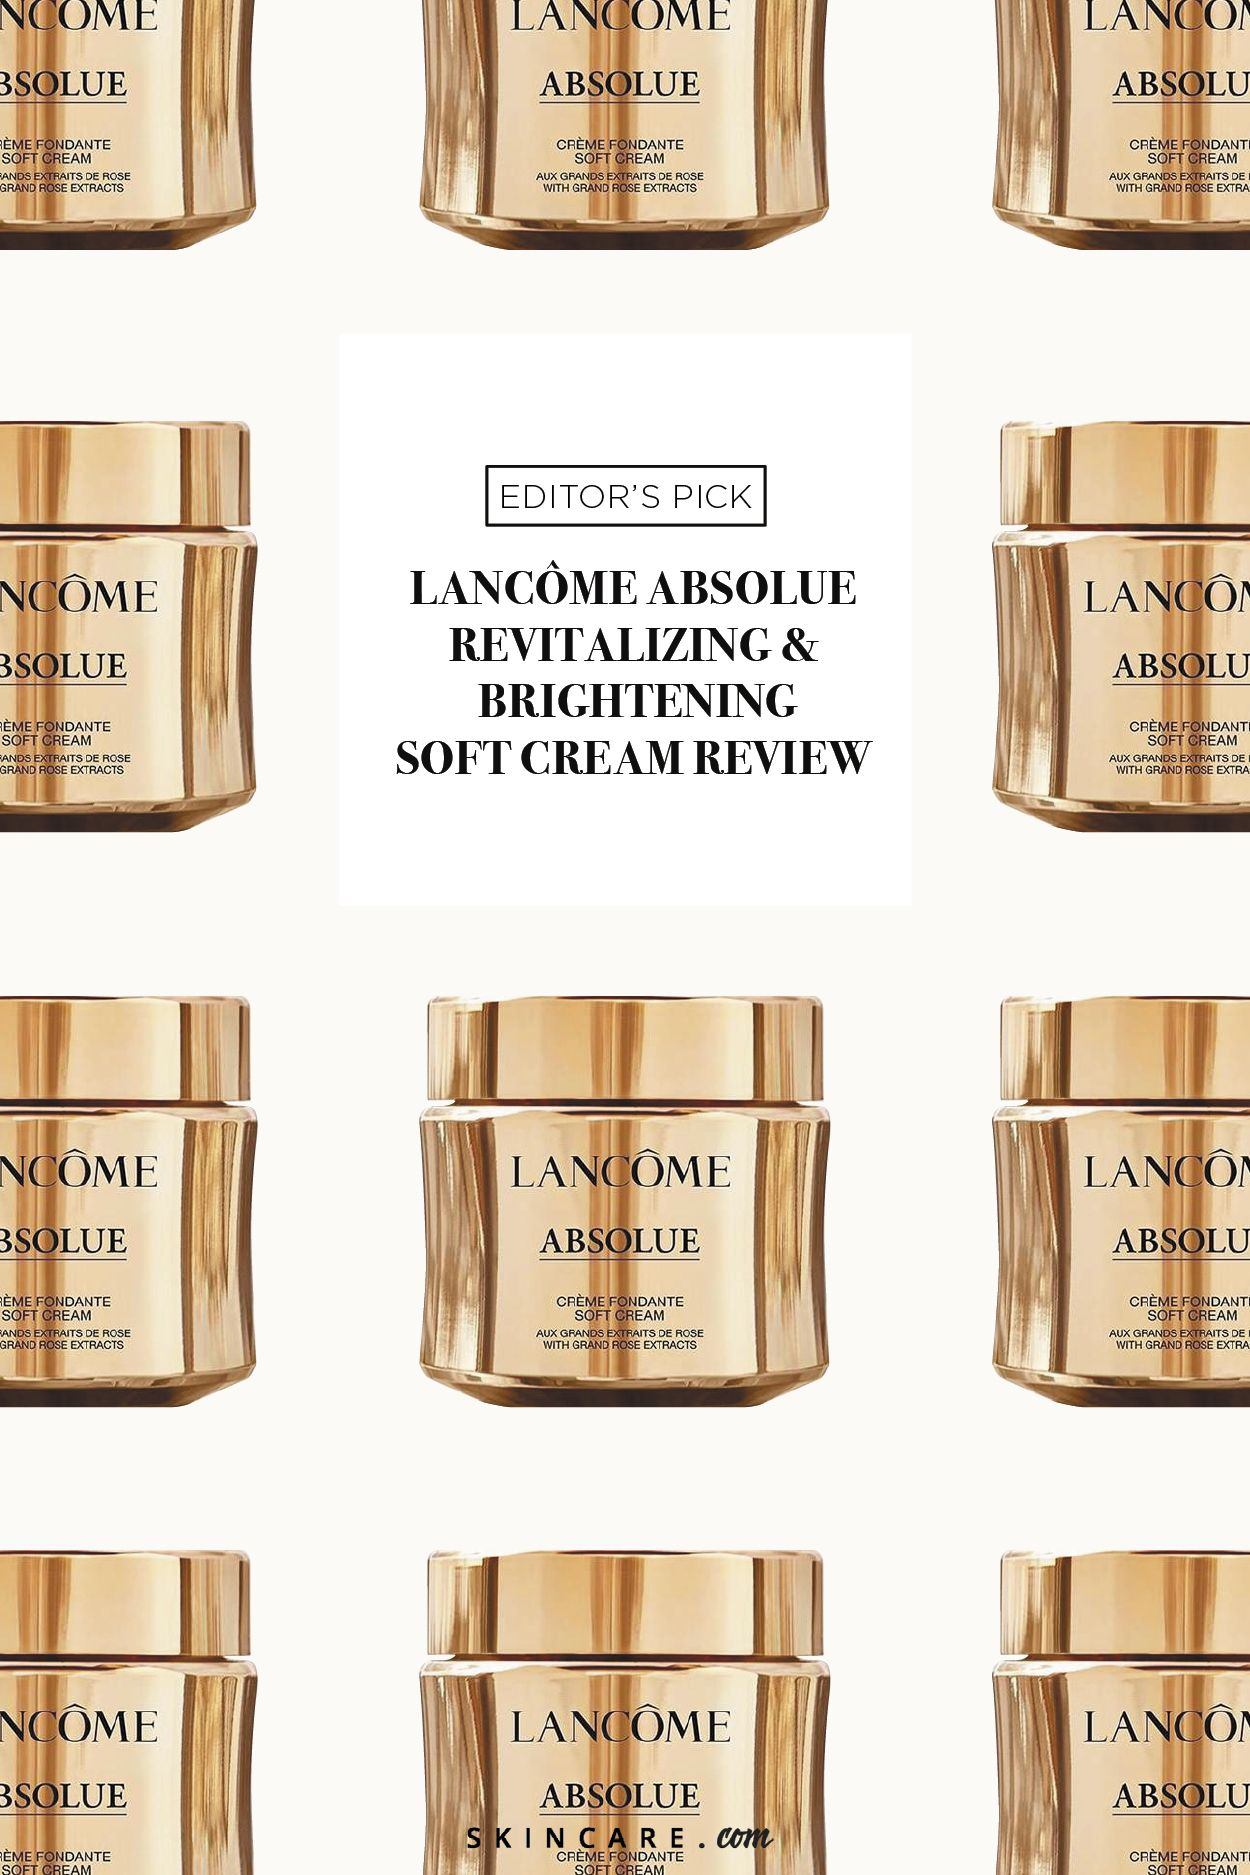 Lancome Absolue Revitalizing Brightening Soft Cream Review Lancome Absolue Lancome Skin So Soft